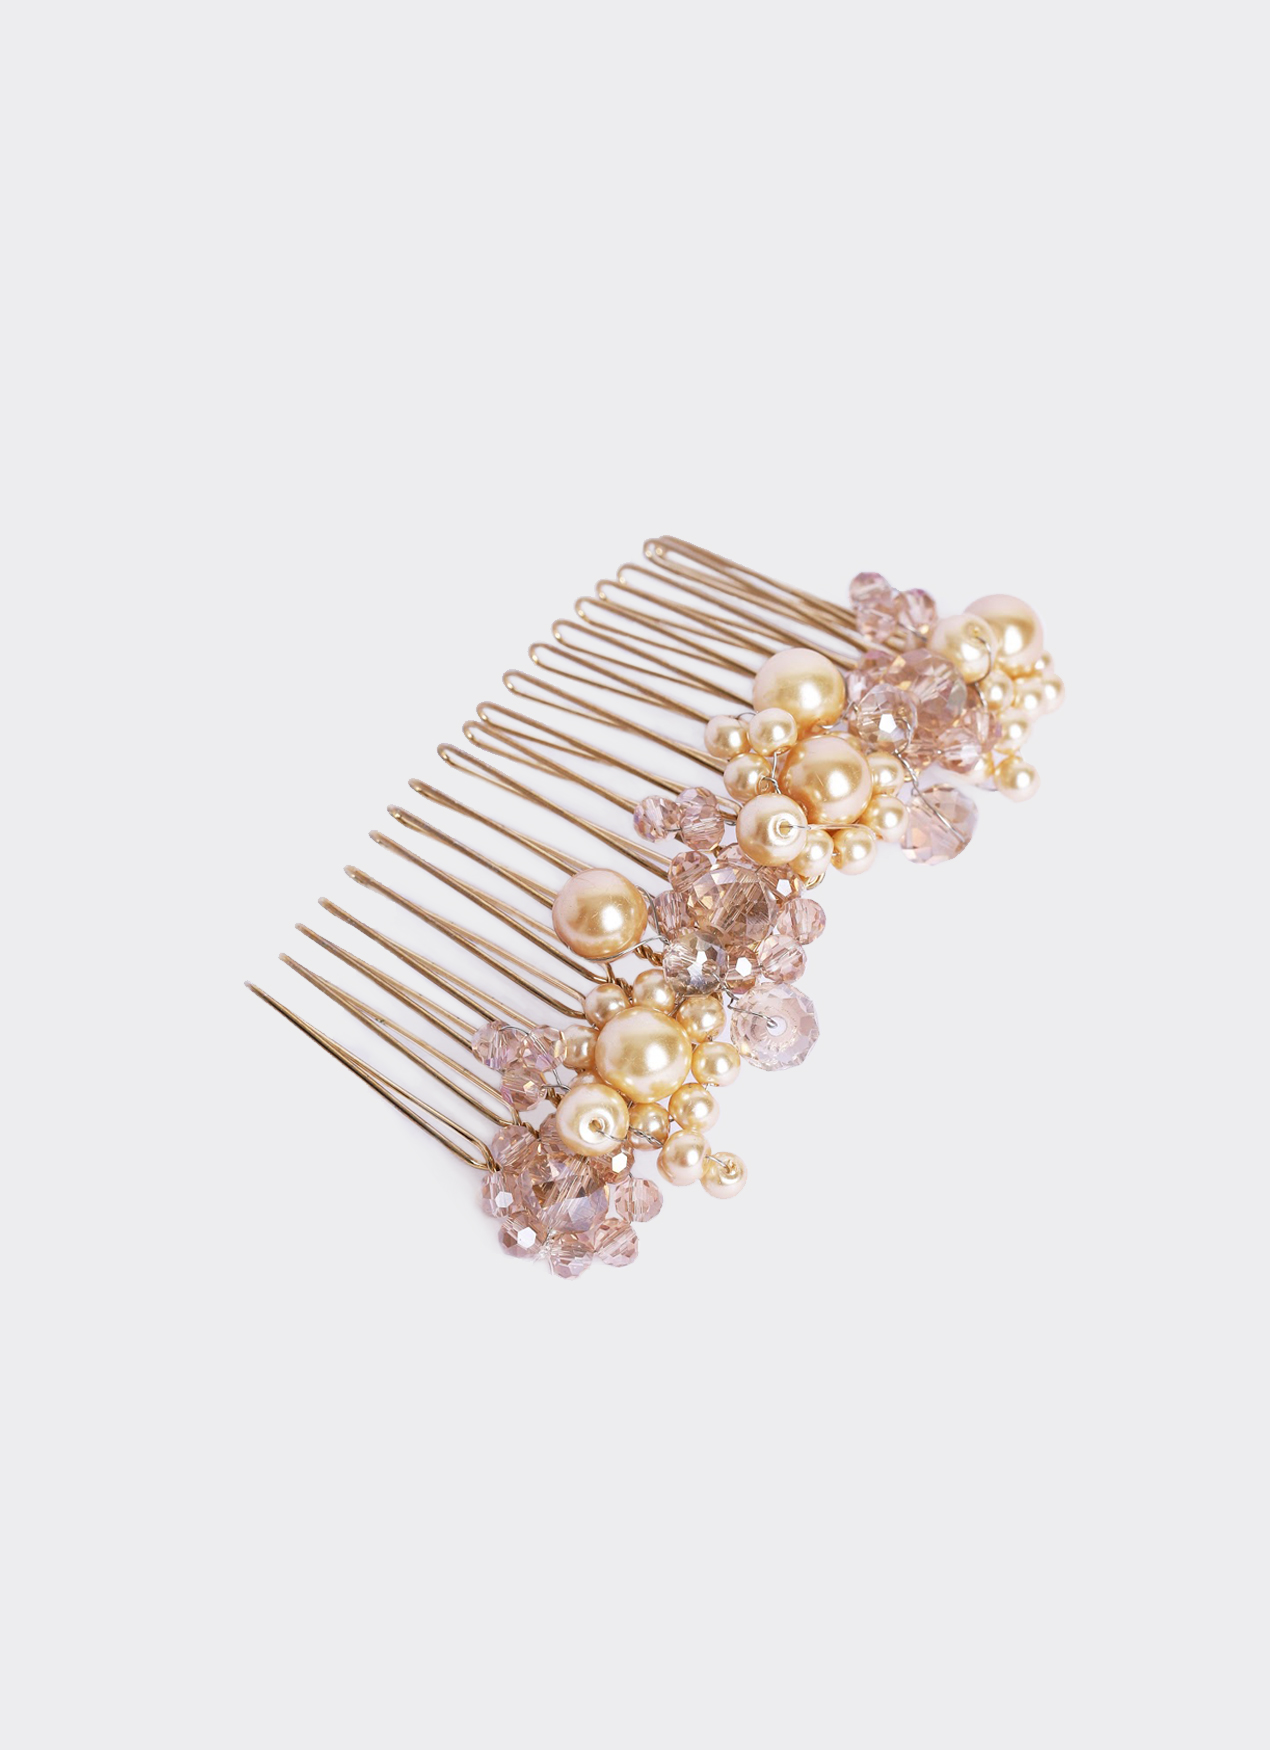 Soreyn Belle Hair Comb - Rose Gold